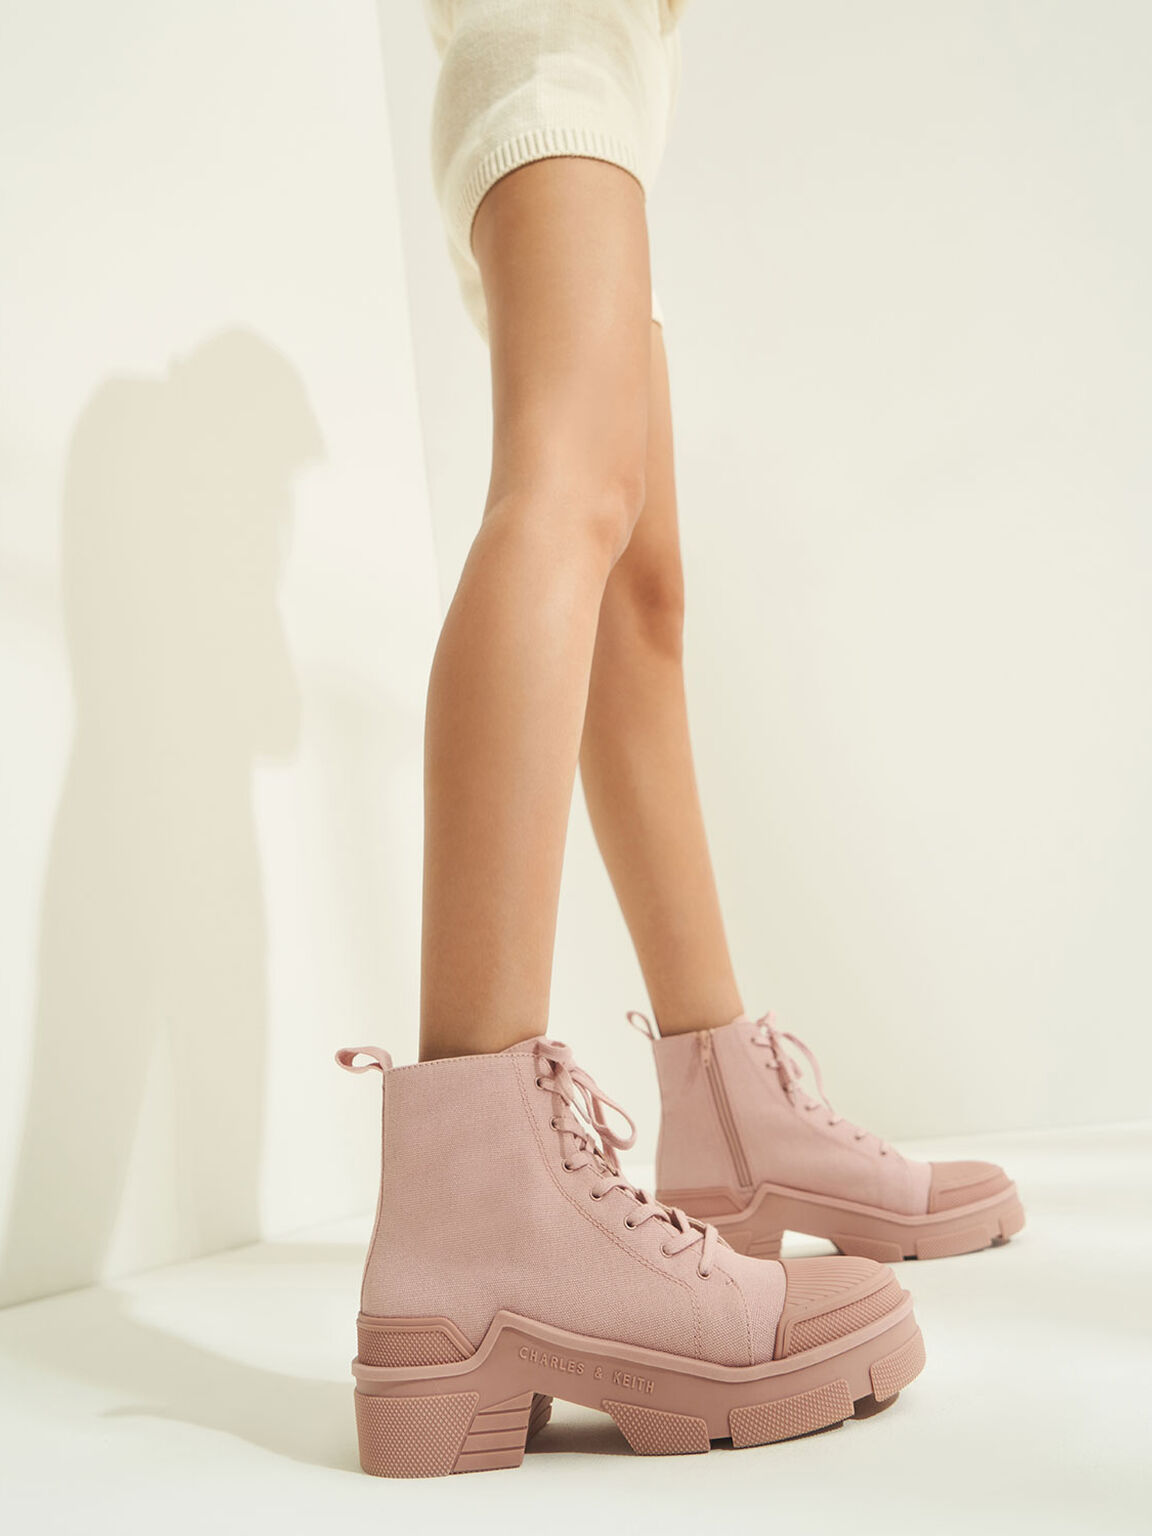 Canvas High Top Sneakers, Light Pink, hi-res